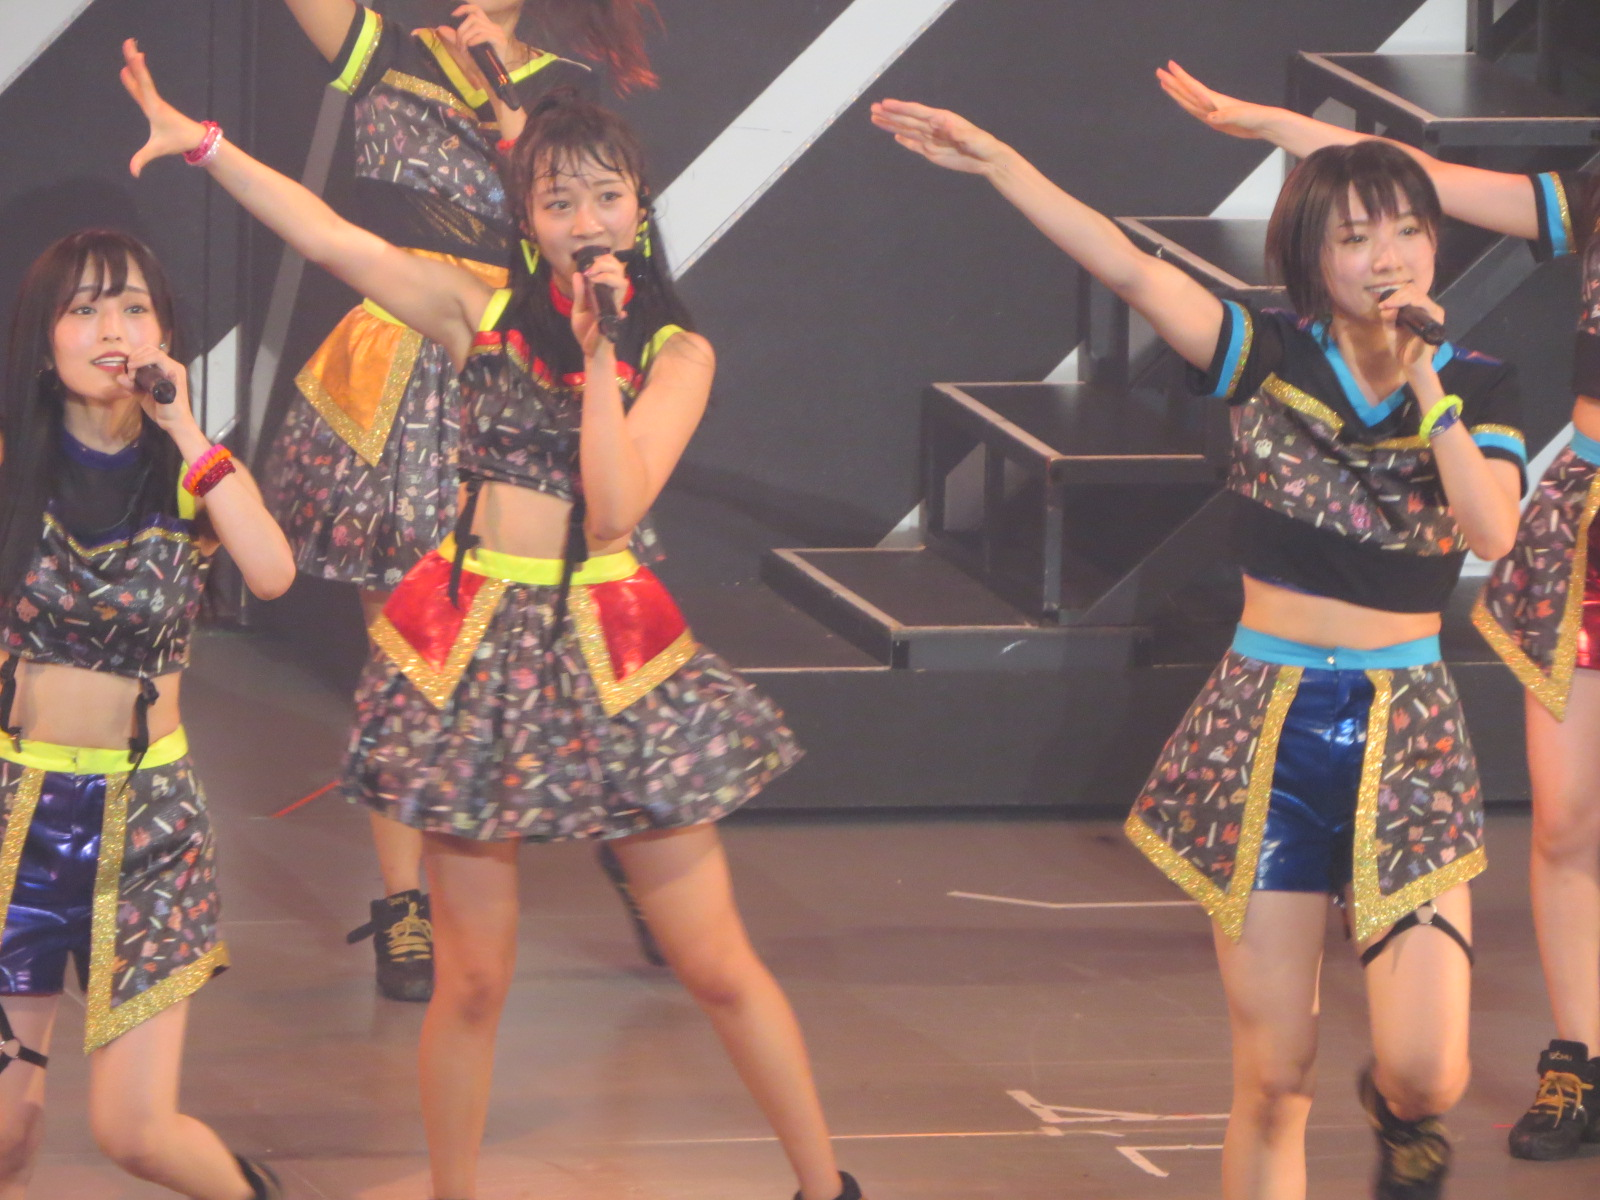 NMB48 LIVE TOUR 2018 in Summer・石川公演の画像-096